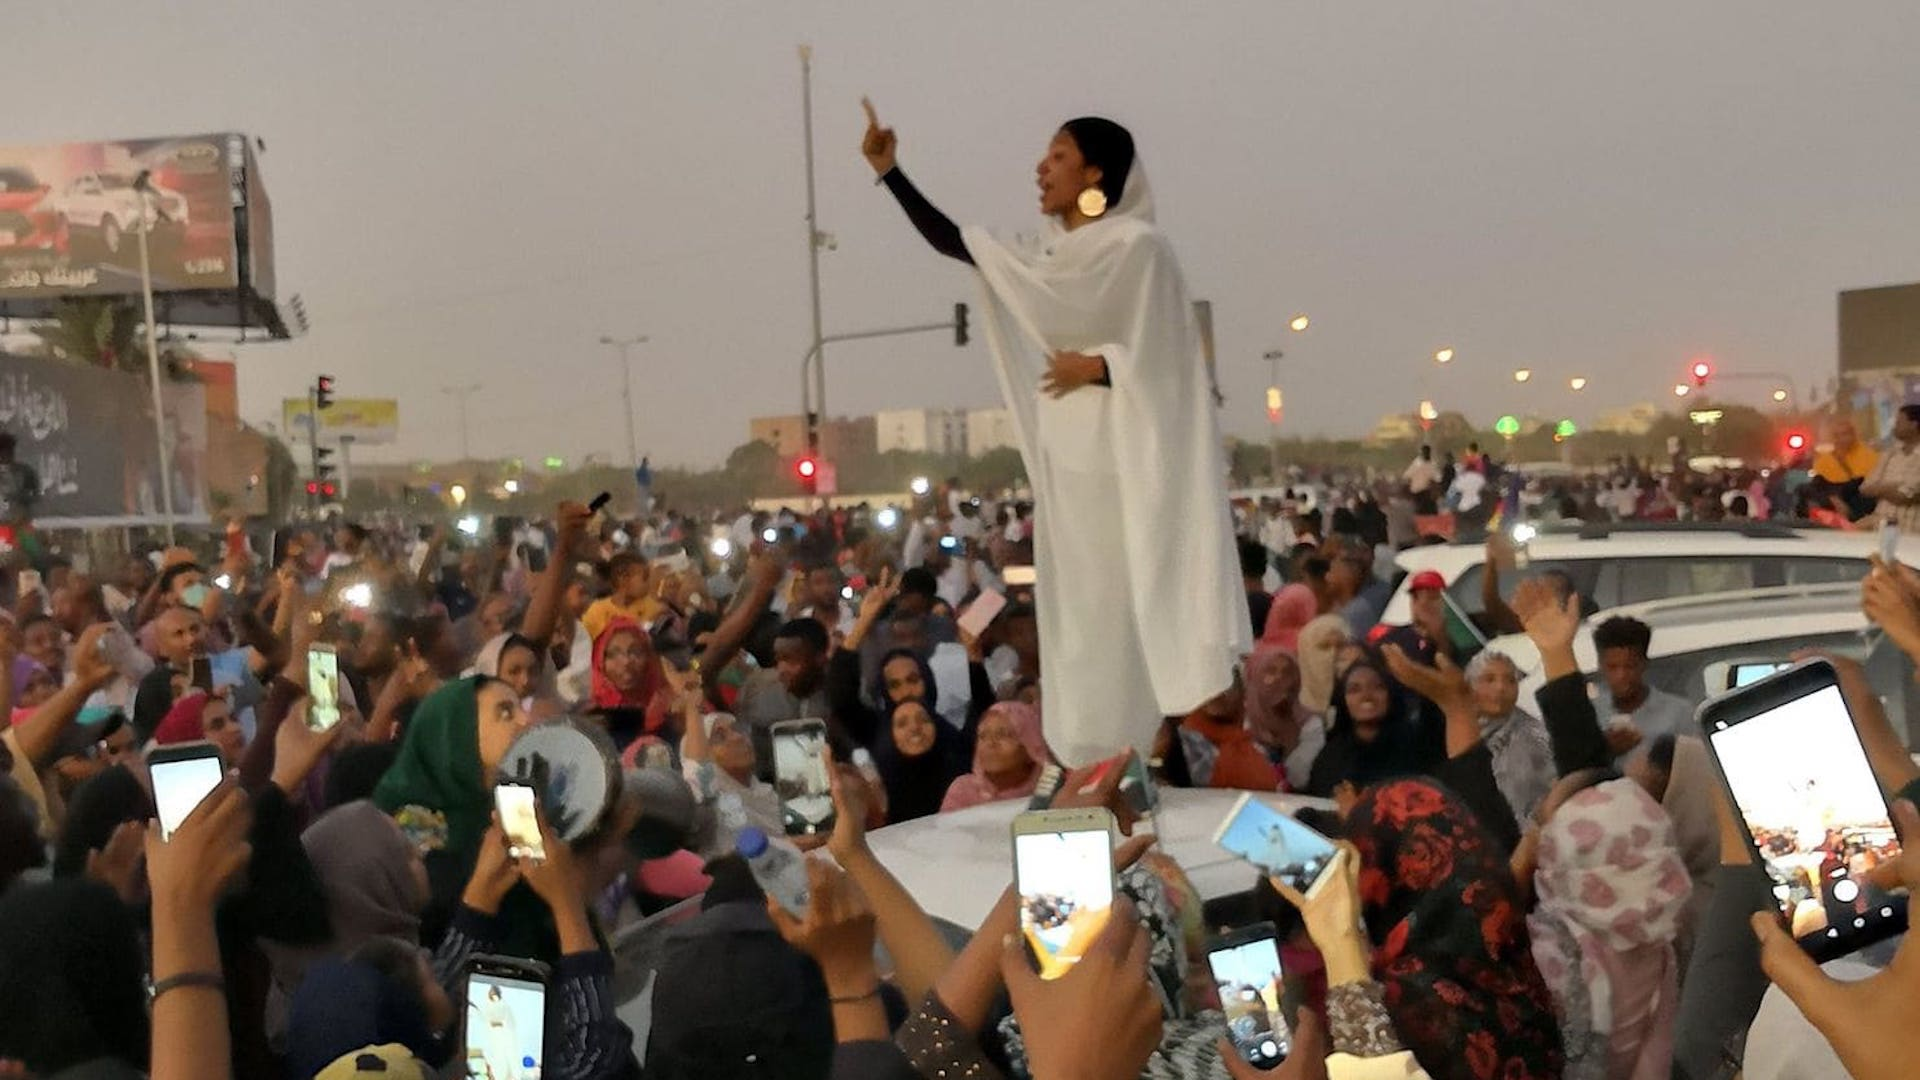 Images of 22-year-old Alaa Salah at an April 8 protest in Khartoum, Sudan, were shared widely on Sudanese social media.  Taken by Lana Haroun